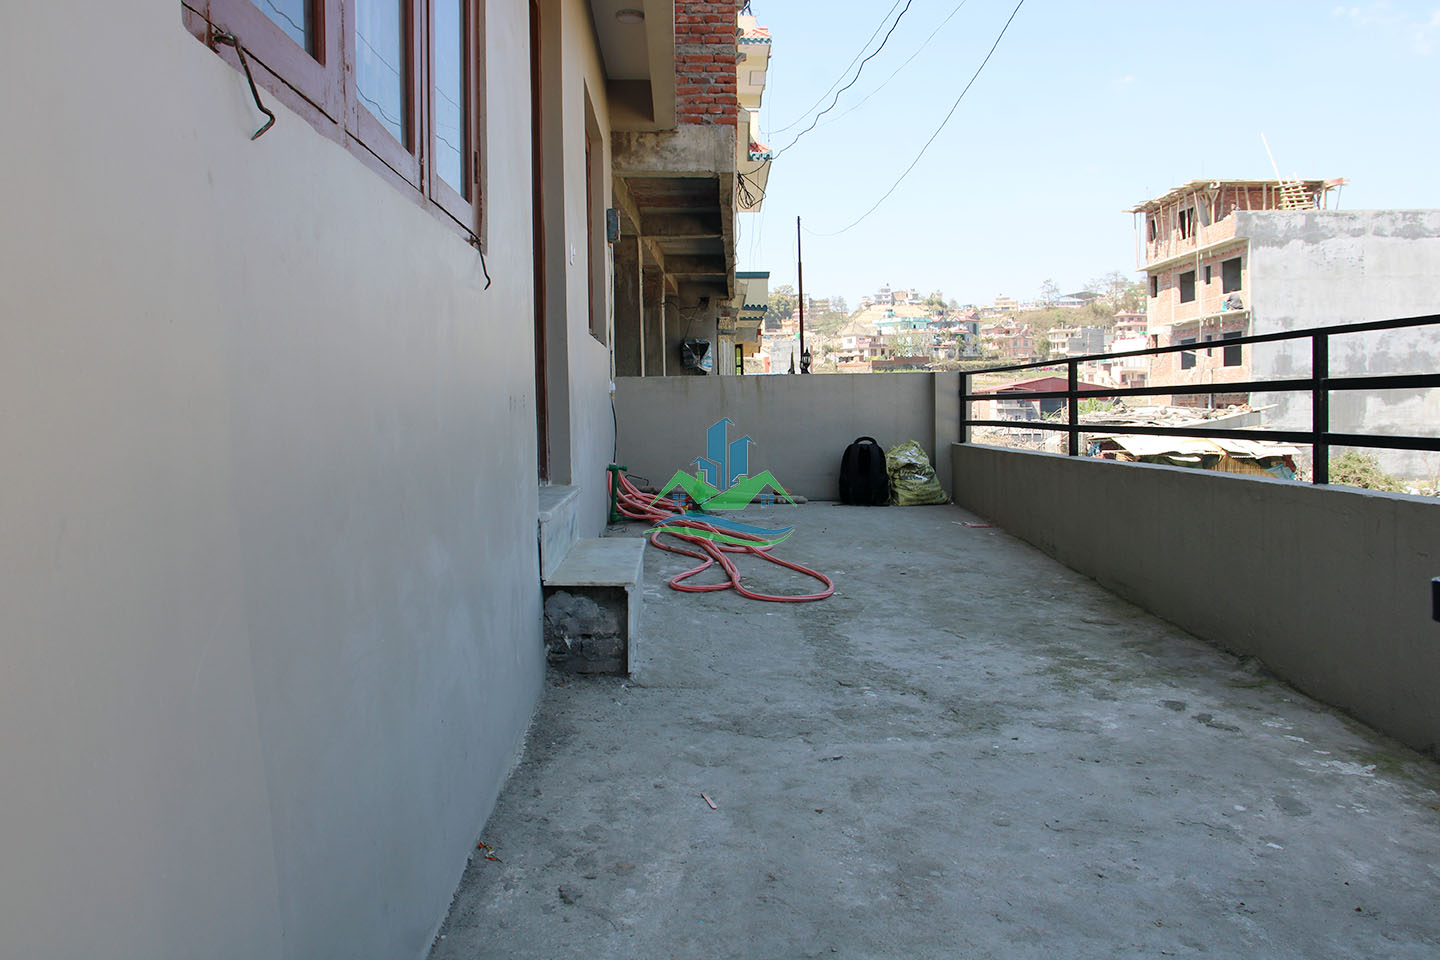 eProperty_nepal_(26).jpg